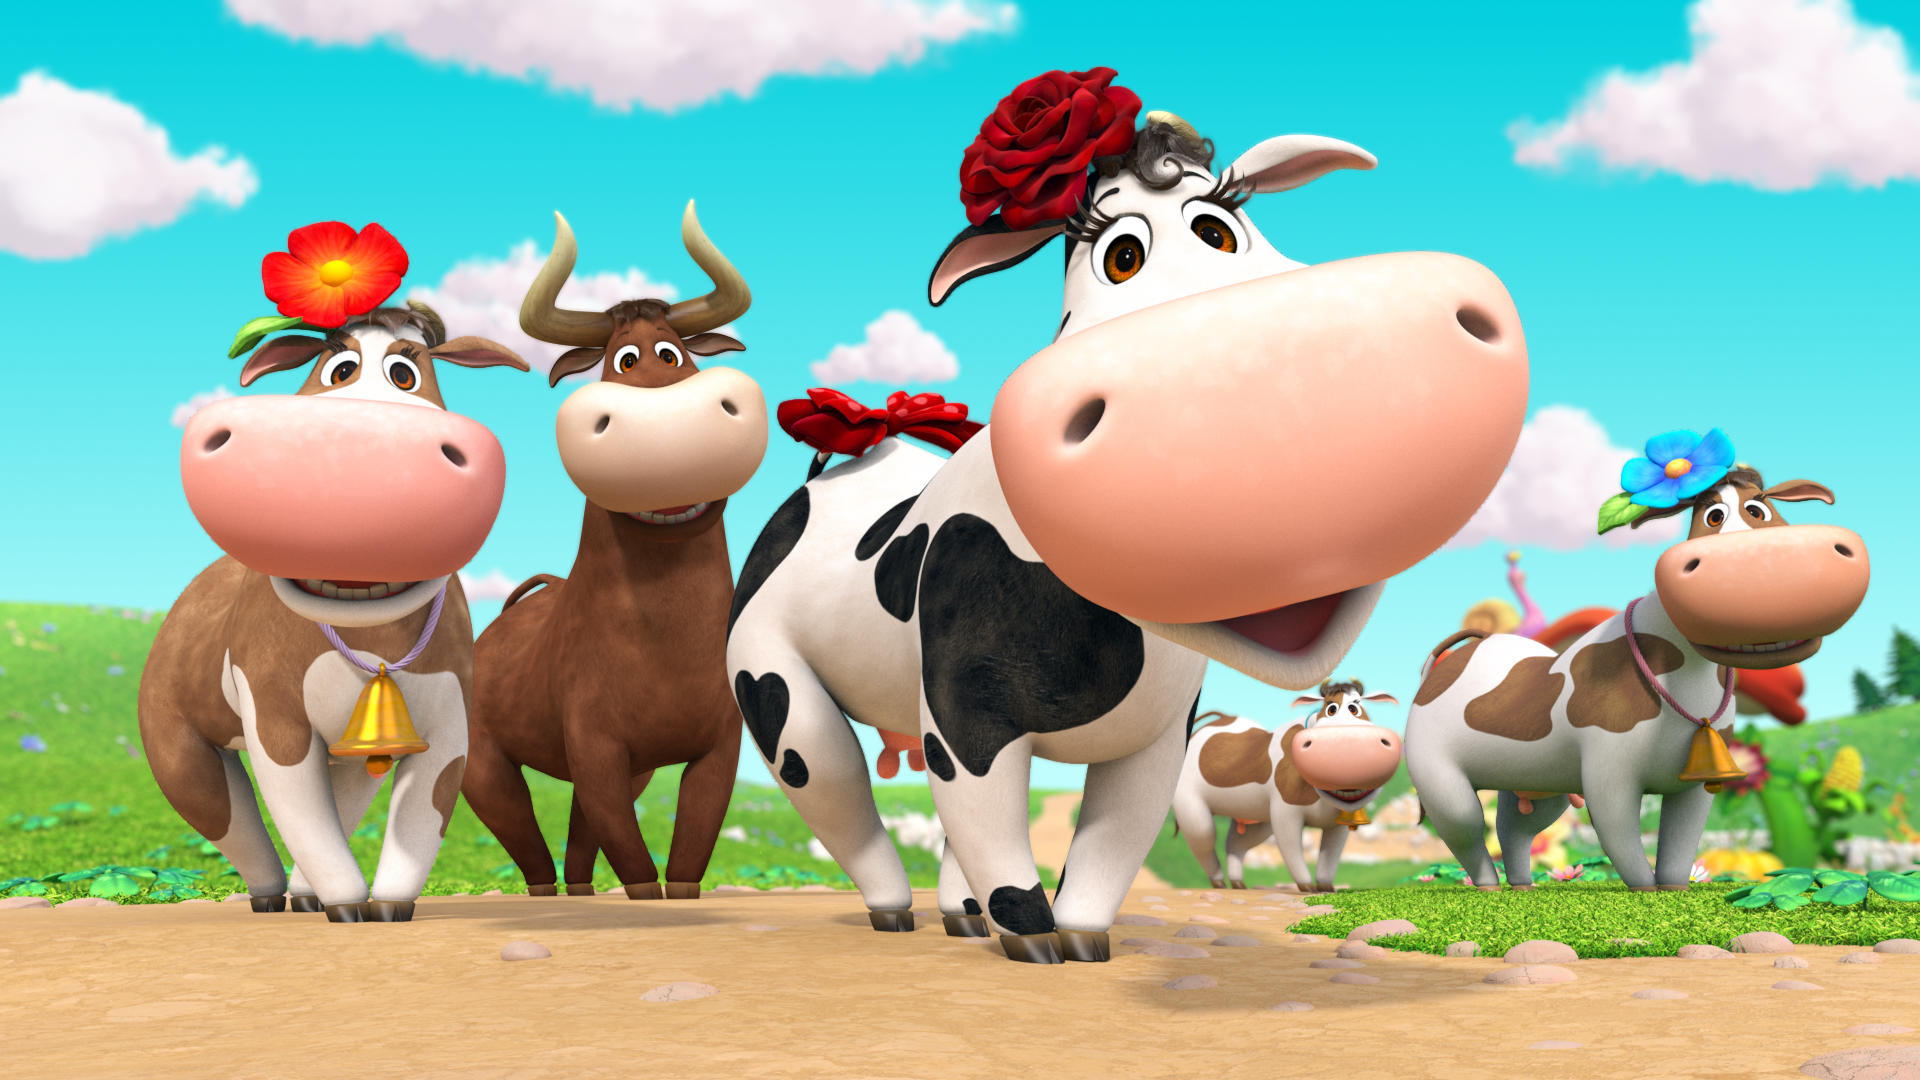 NEW Episode The Cow Named Lola 🙌 😉 It's time to have a